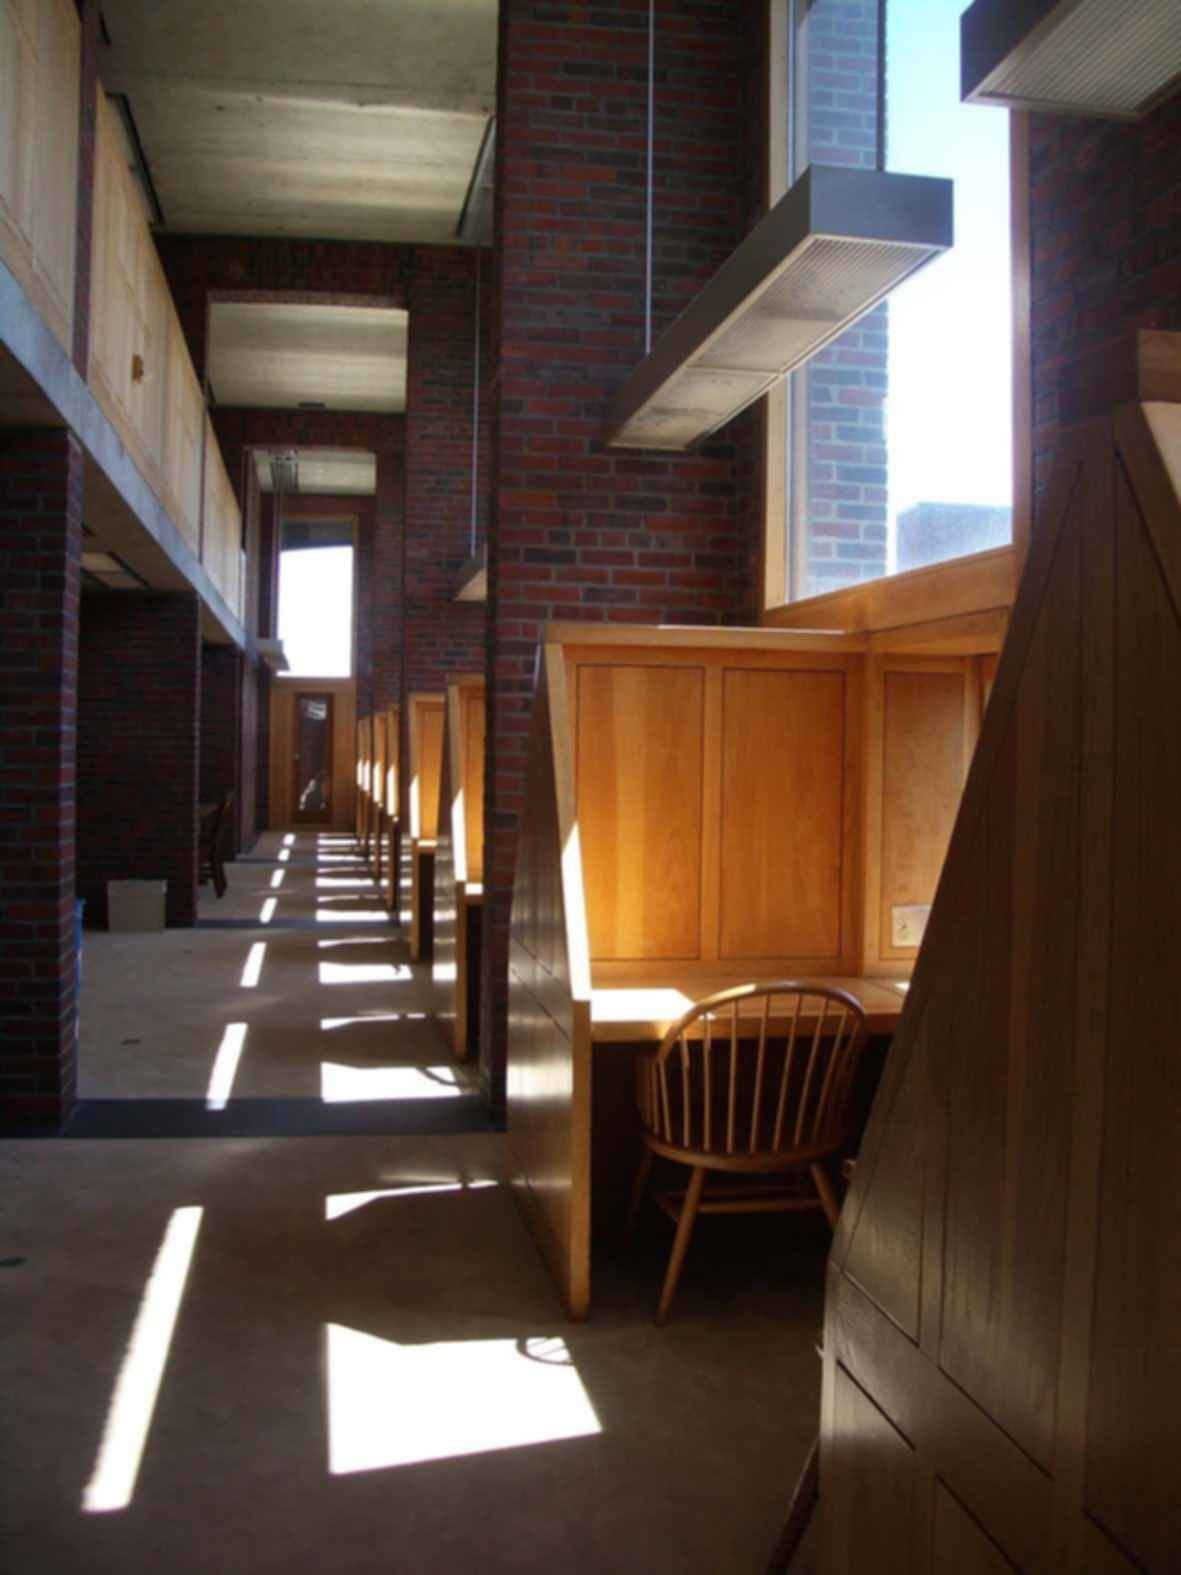 Phillips Exeter Academy Library - Interior/Desks